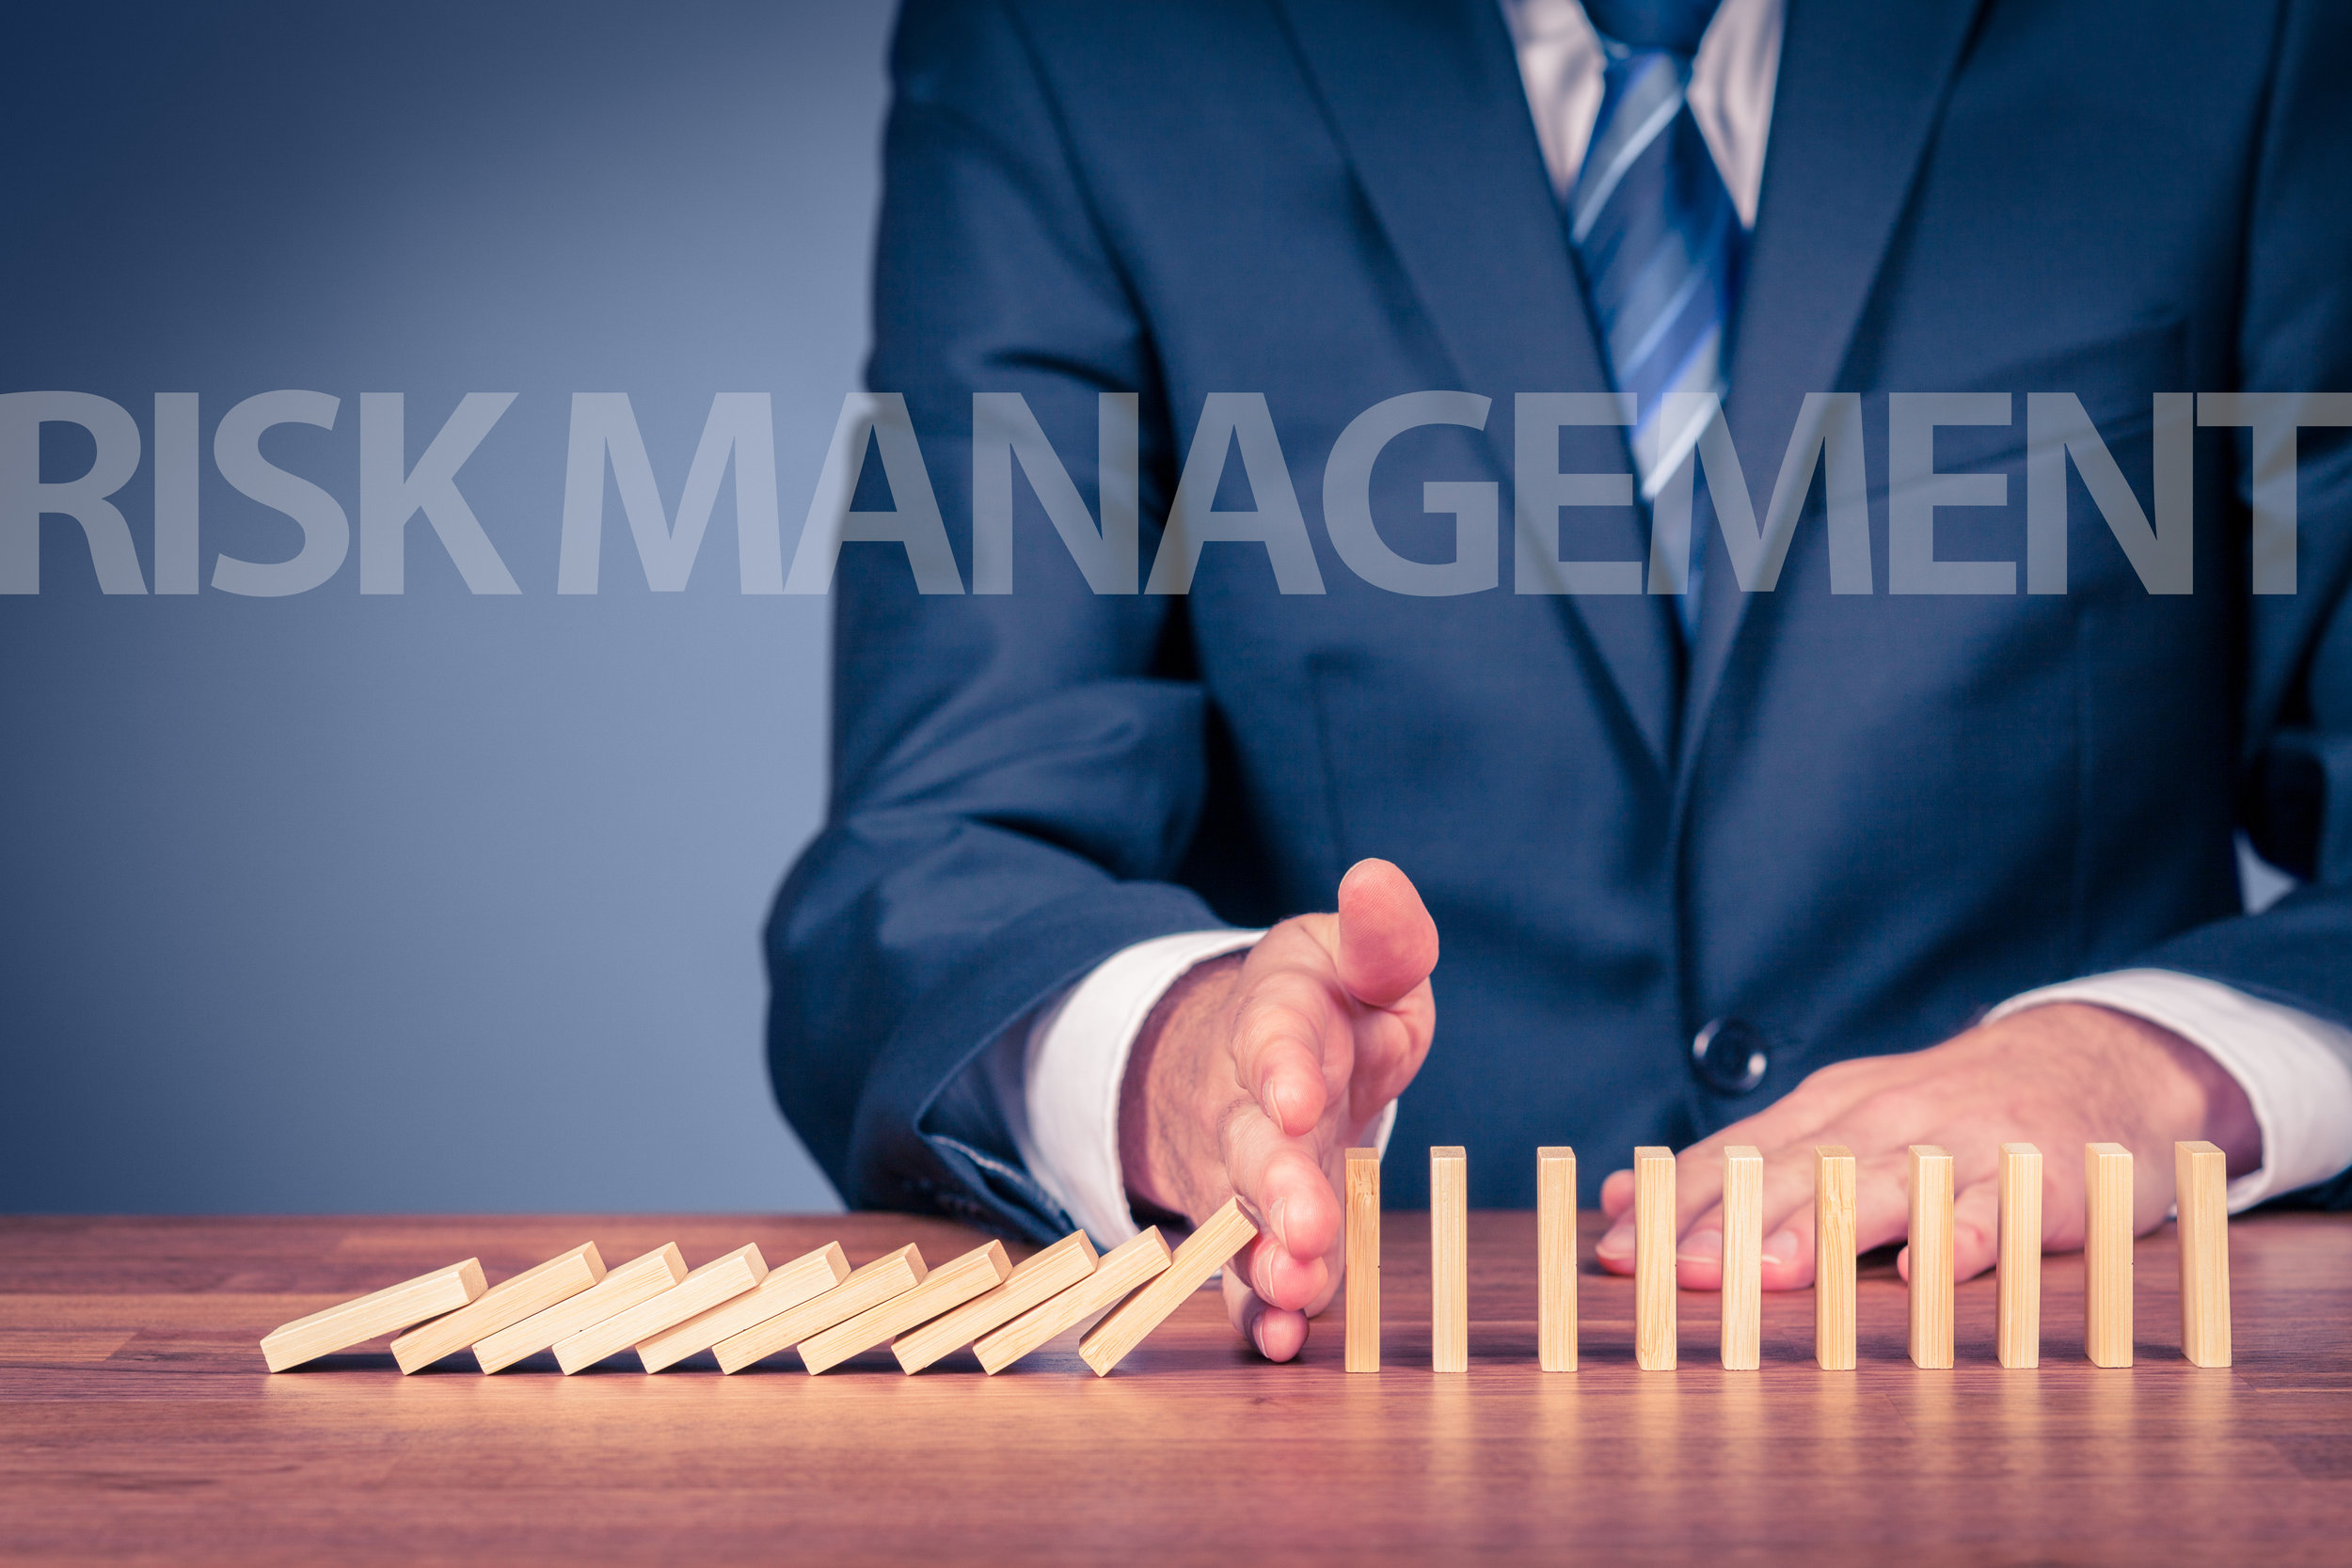 shutterstock_514850704- Risk Management.jpg